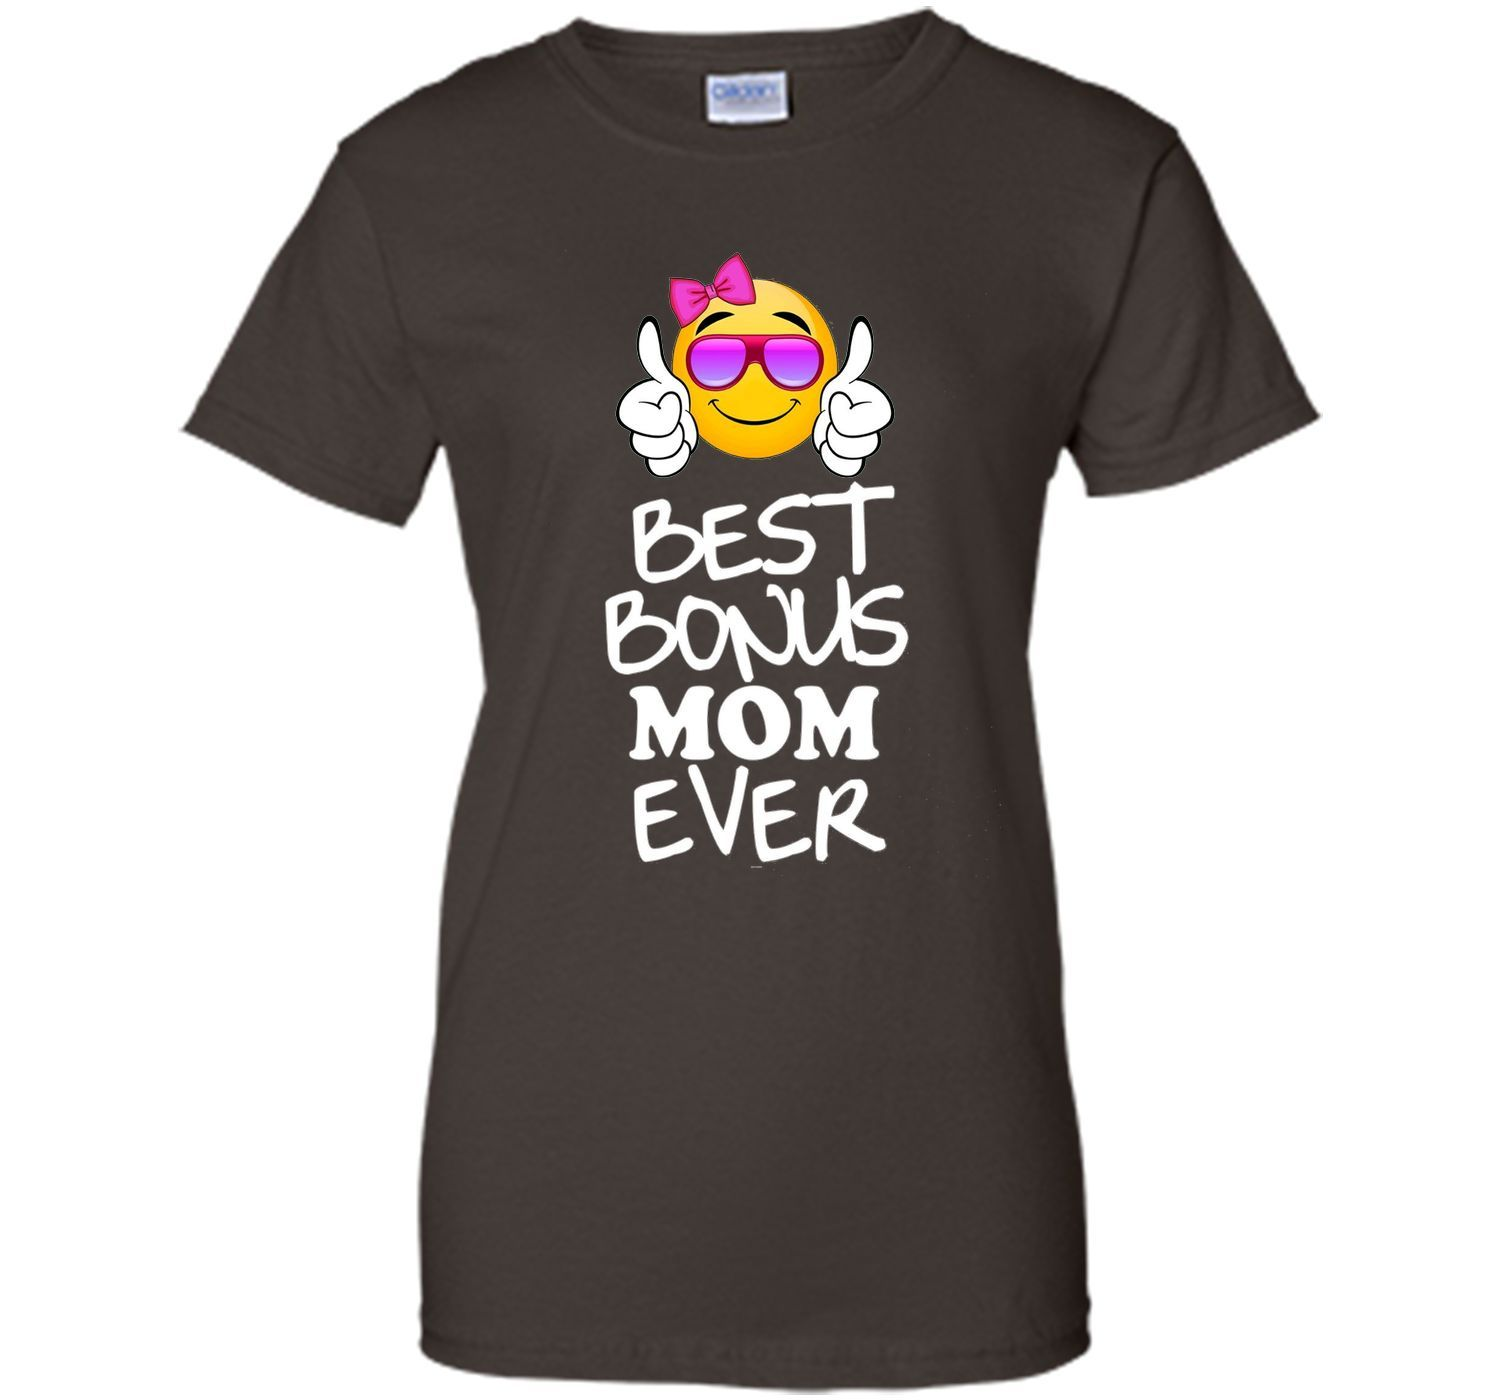 Emoji mother's day women shirt bonus mom gifts from kids son - mother's day